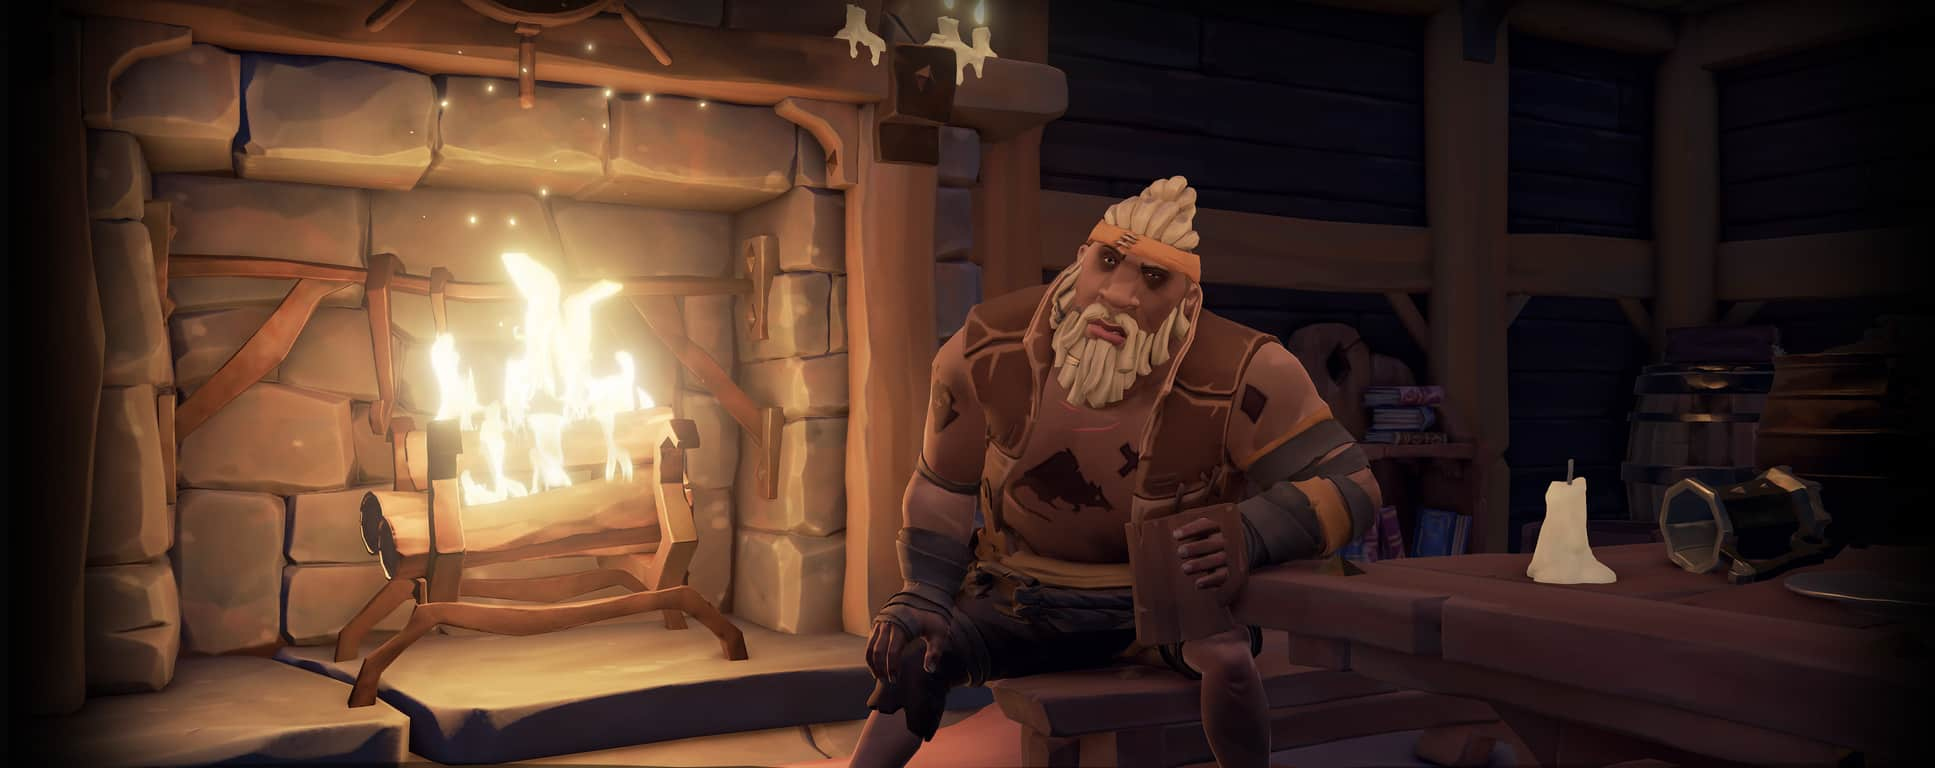 Sea of thieves' first expansion the hungering deep is now available on xbox one and windows 10 - onmsft. Com - may 29, 2018